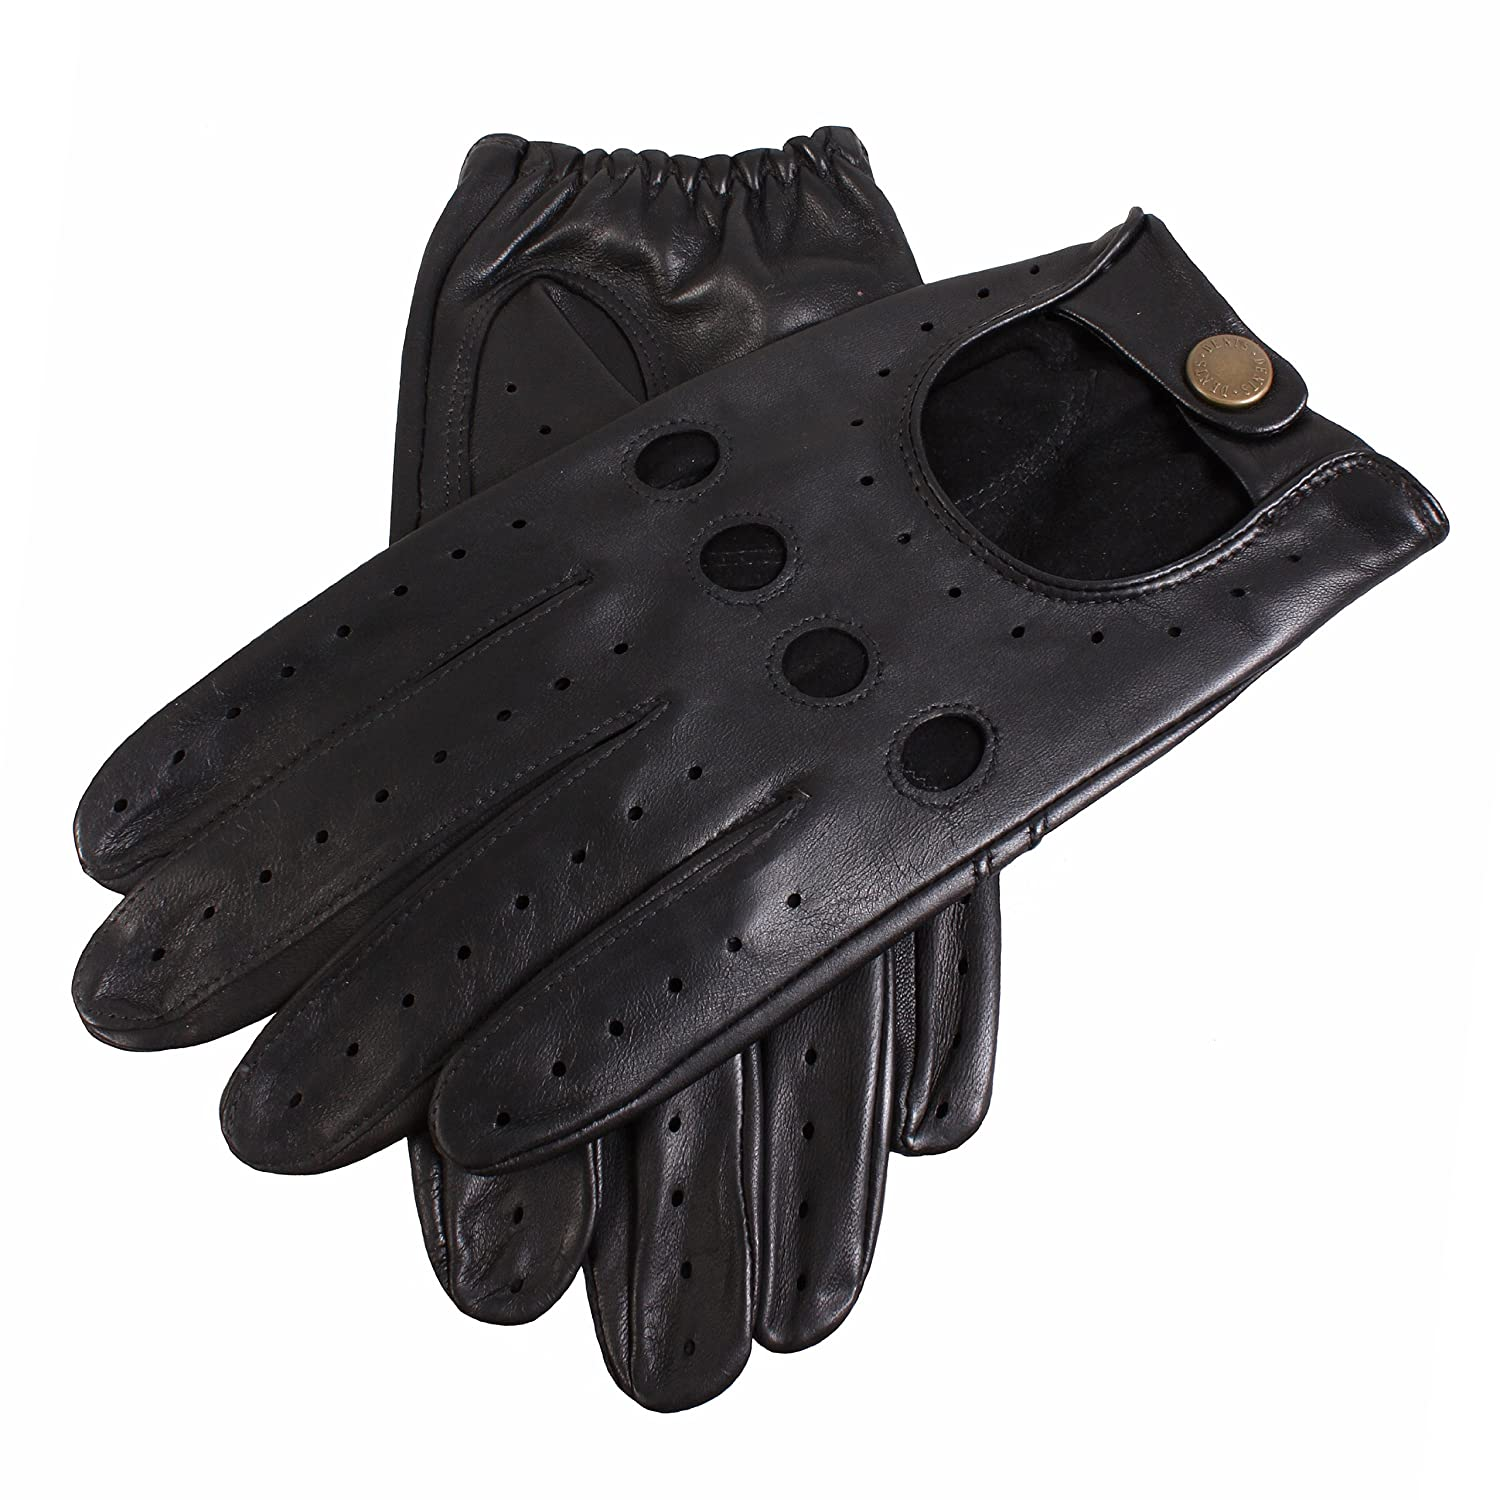 Leather driving gloves dents - Black Delta Leather Driving Gloves By Dents 7 8 Dents At Amazon Men S Clothing Store Powersports Gloves